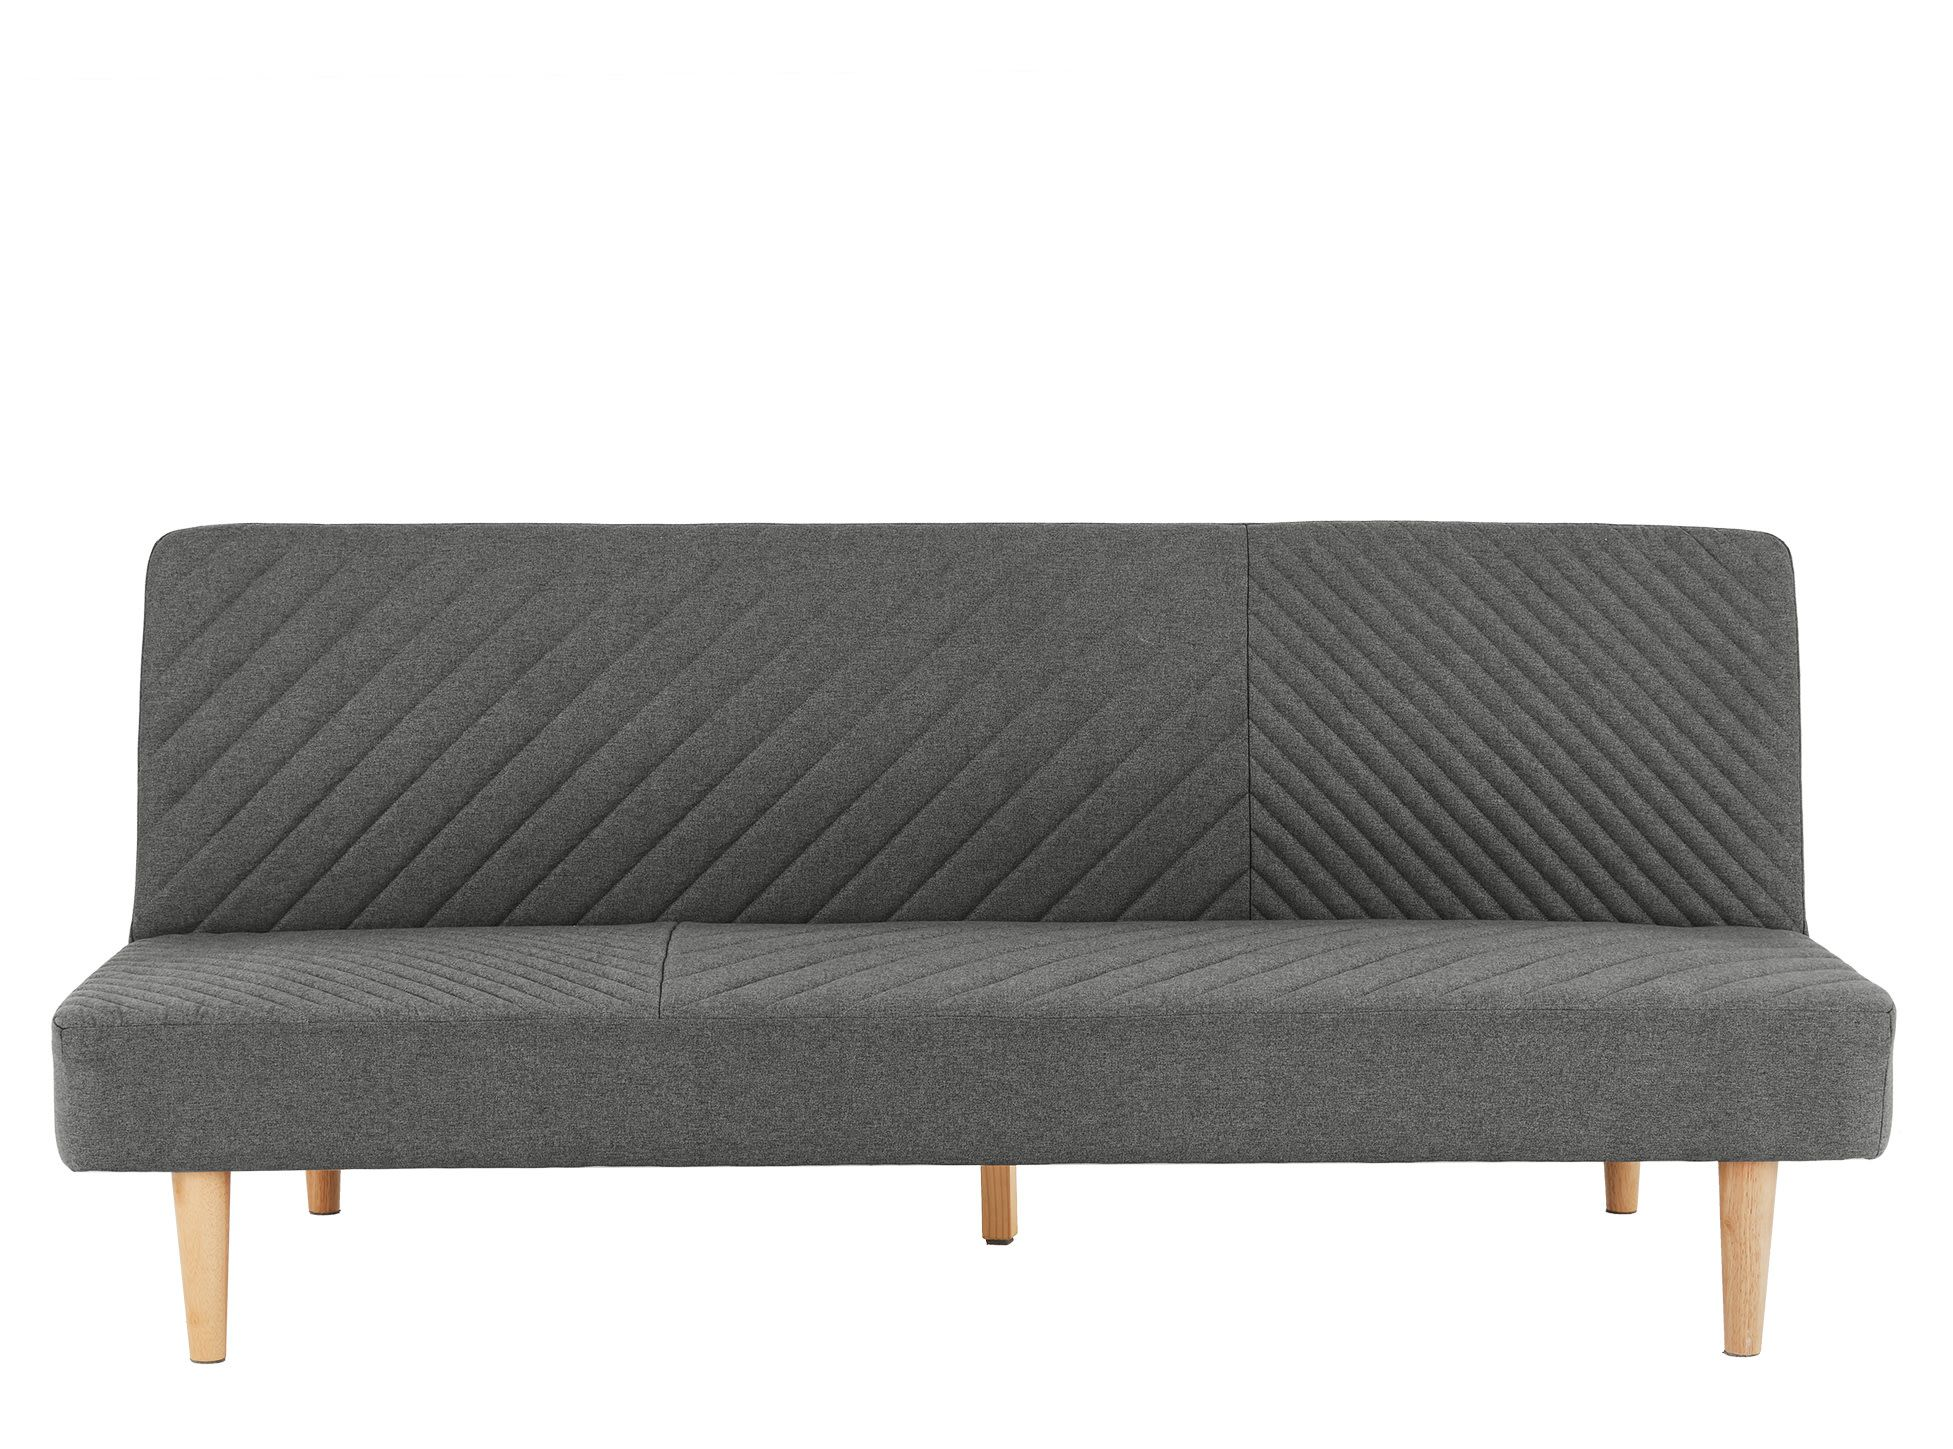 Bettsofa Outlet Made Click Clack Sofa Bed Marl Grey Express Delivery